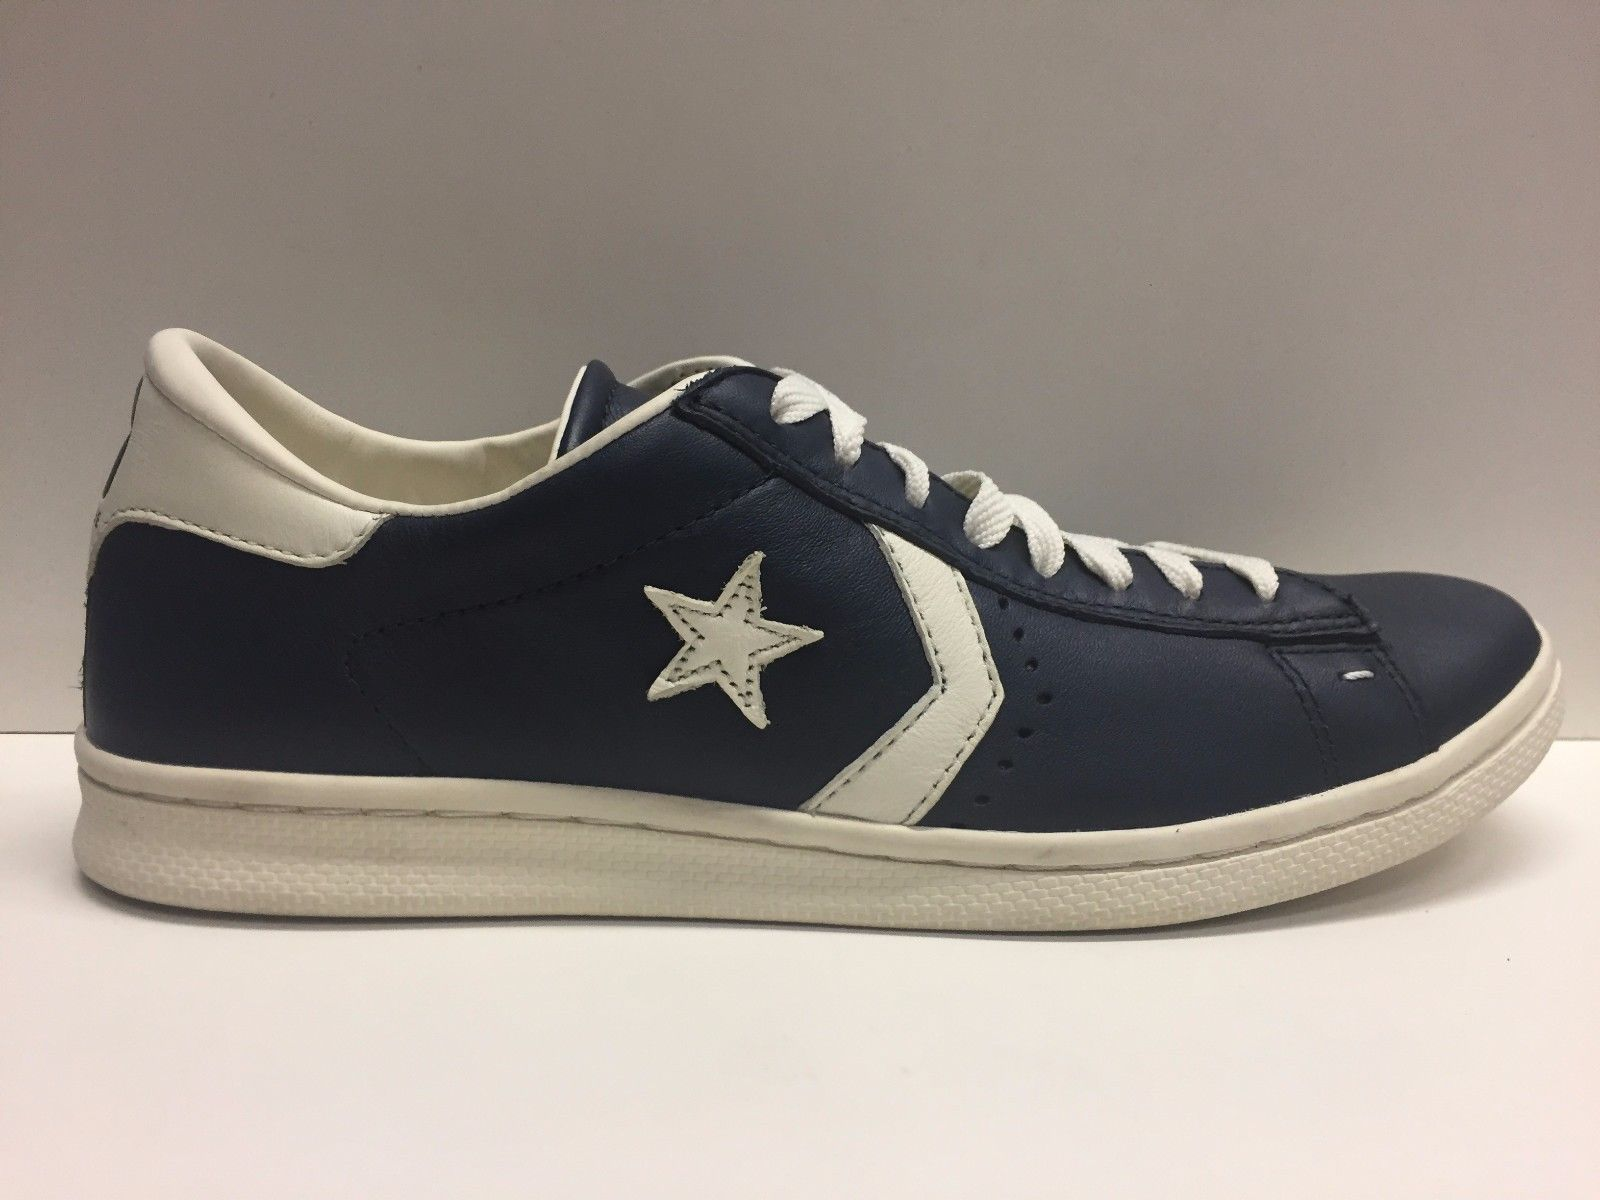 SCARPE SNEAKERS DONNA UOMO CONVERSE ALL STAR ORIGINAL PRO LP OX 123223 PELLE A/I